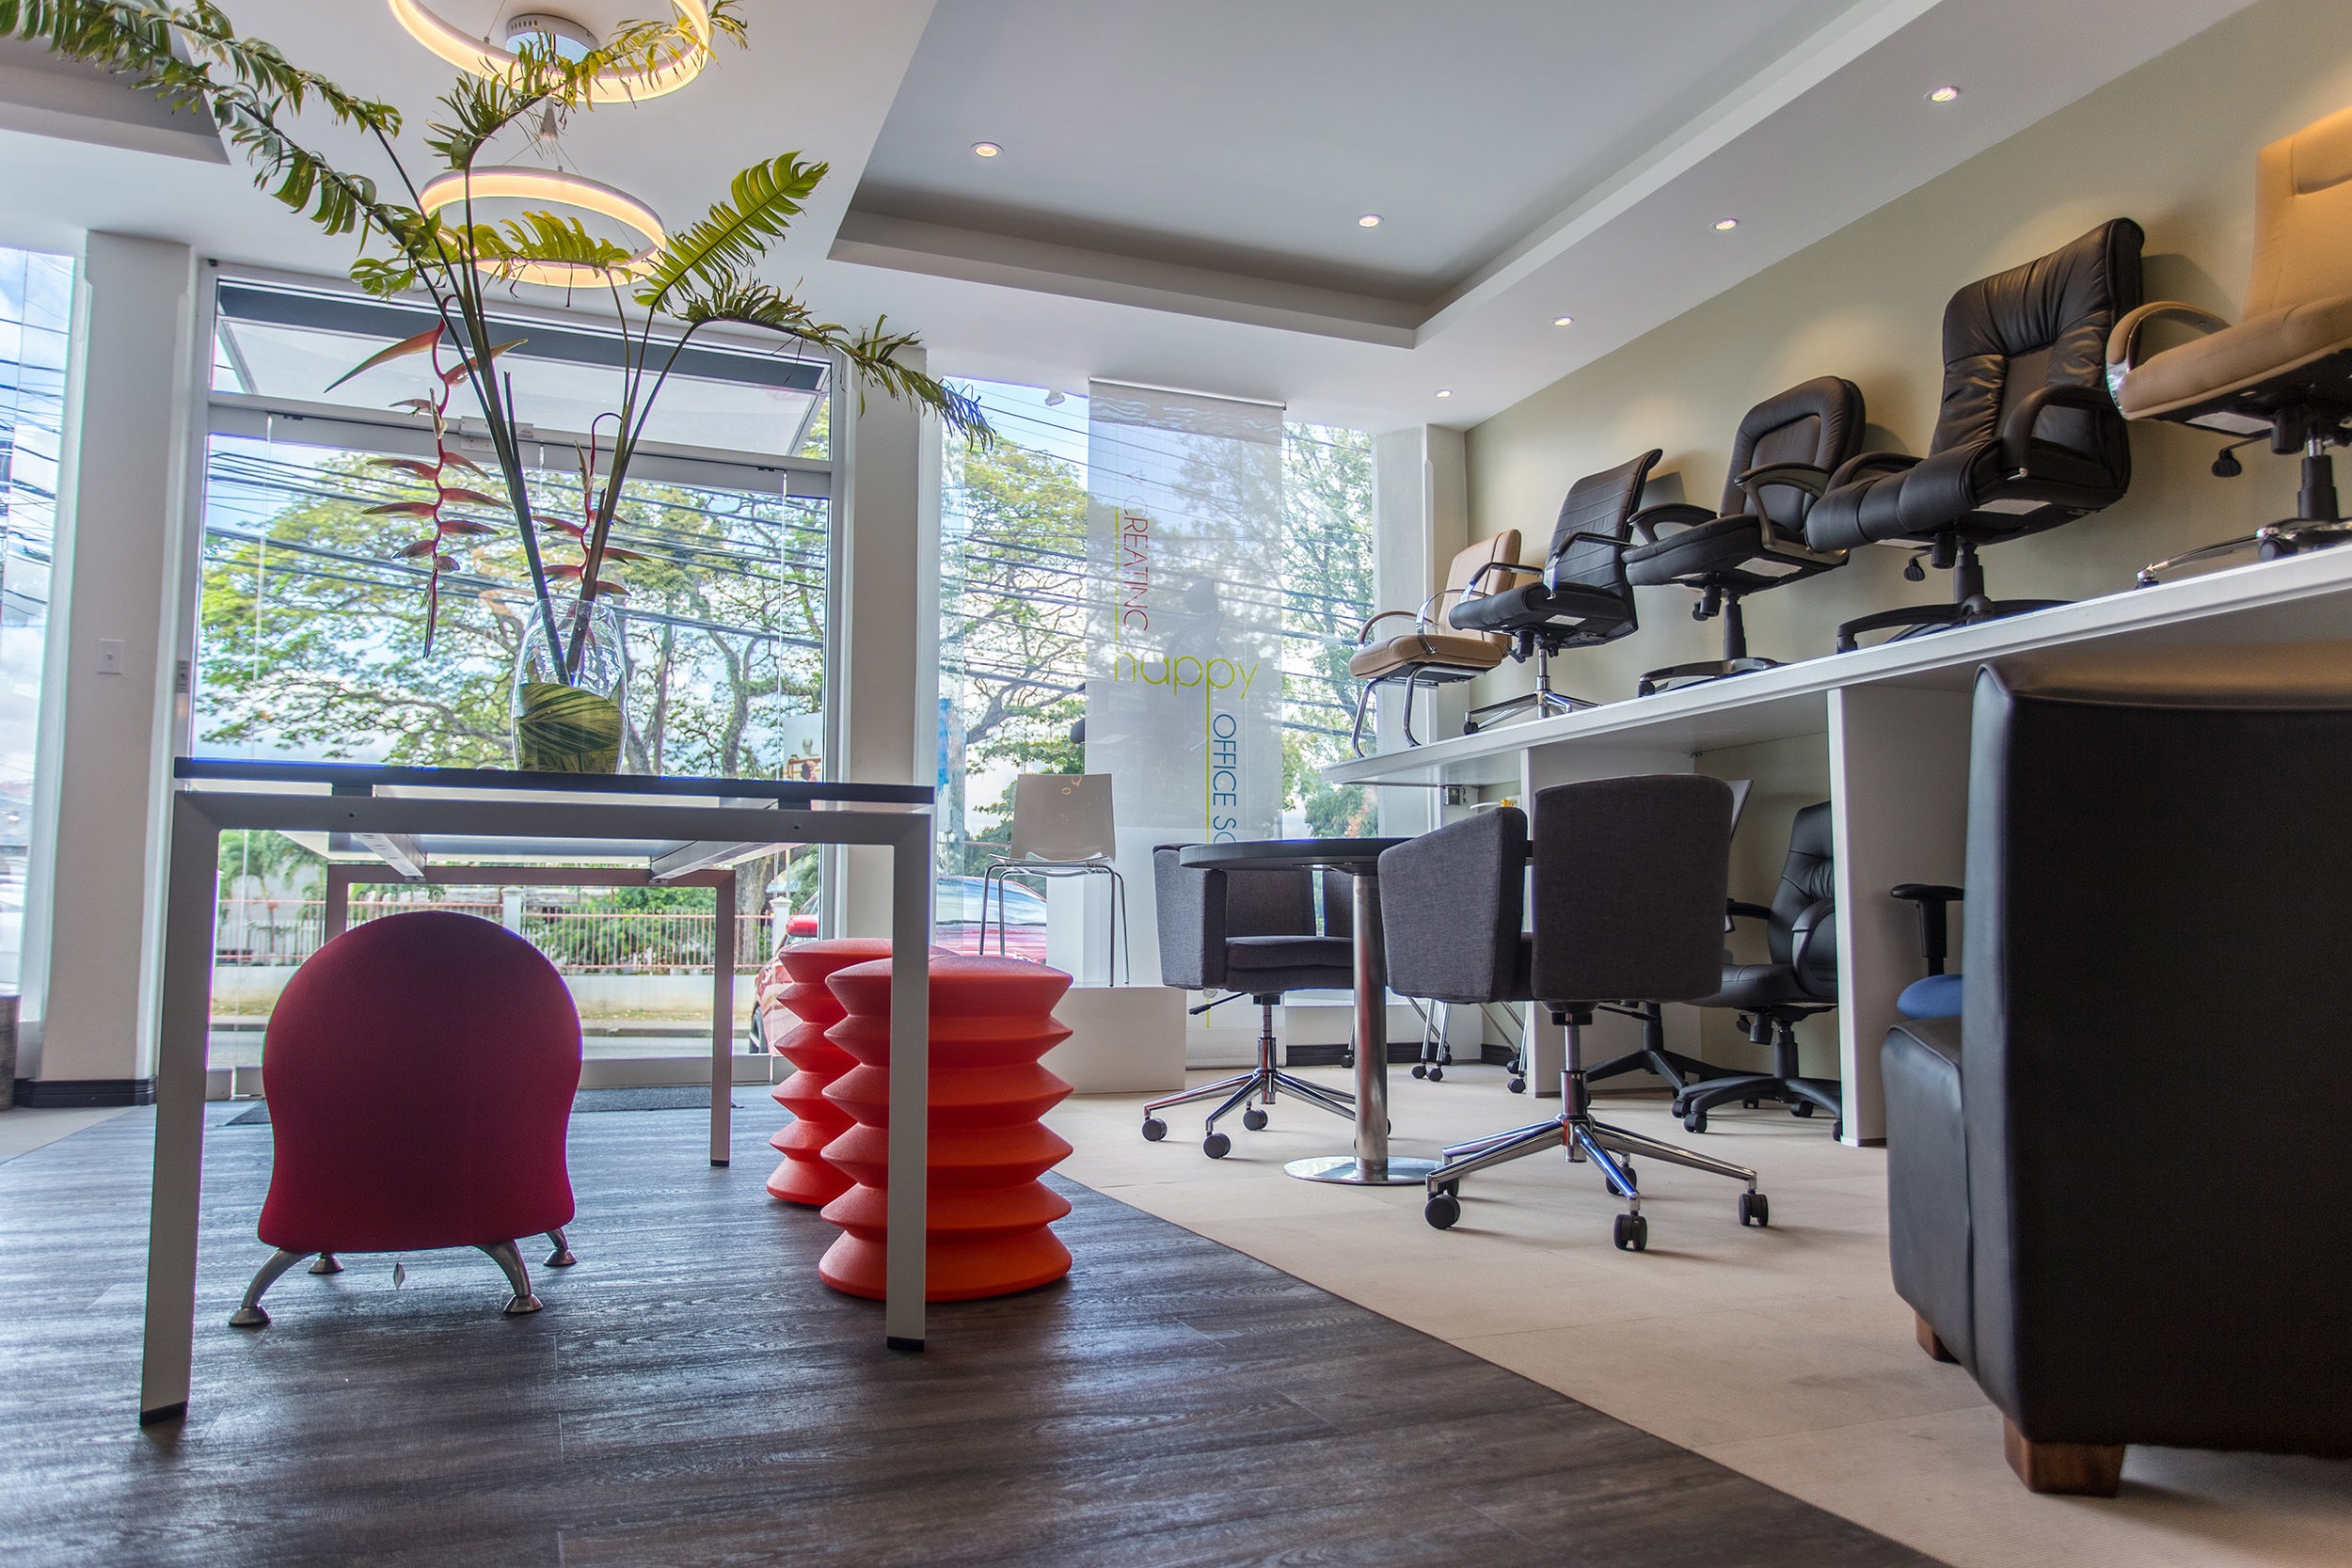 The new Galt & Littlepage showroom at Long Circular Road in St. James boasts a line of contemporary office furniture known as Inscape. Marketing Director Stuart Hart believes Inscape products will prove to be a hit with younger employees looking for trendier, more relaxed workplaces.